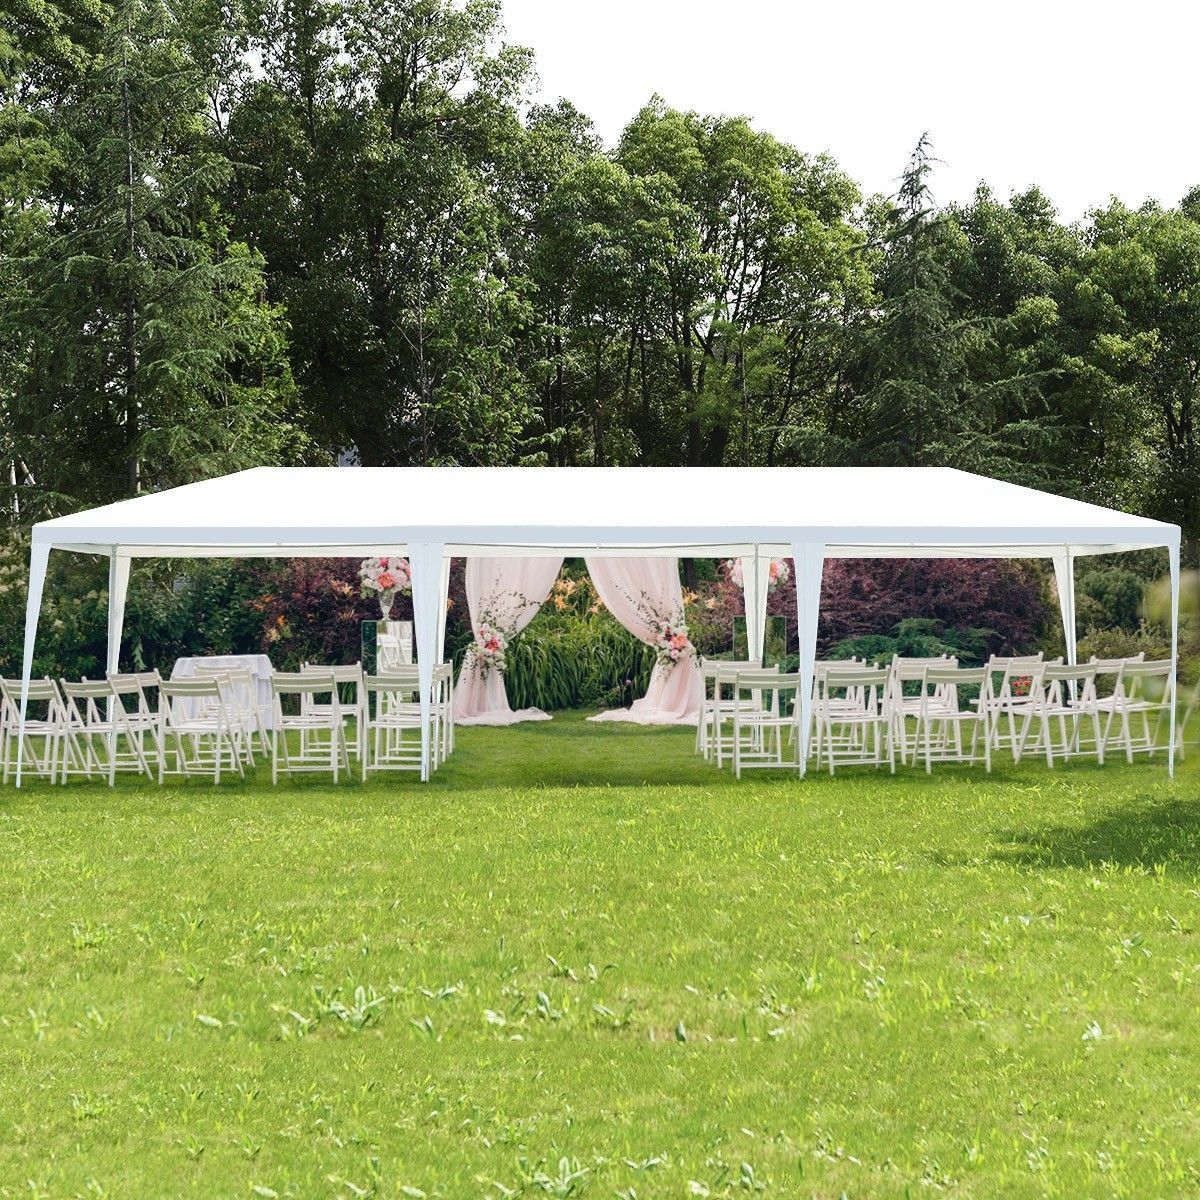 10 X 30 Outdoor Canopy Party Wedding Tent Color White Green Model 30 X10 Ft Three Side Wall Material Polyethyle Patio Tents Outdoor Wedding Event Tent